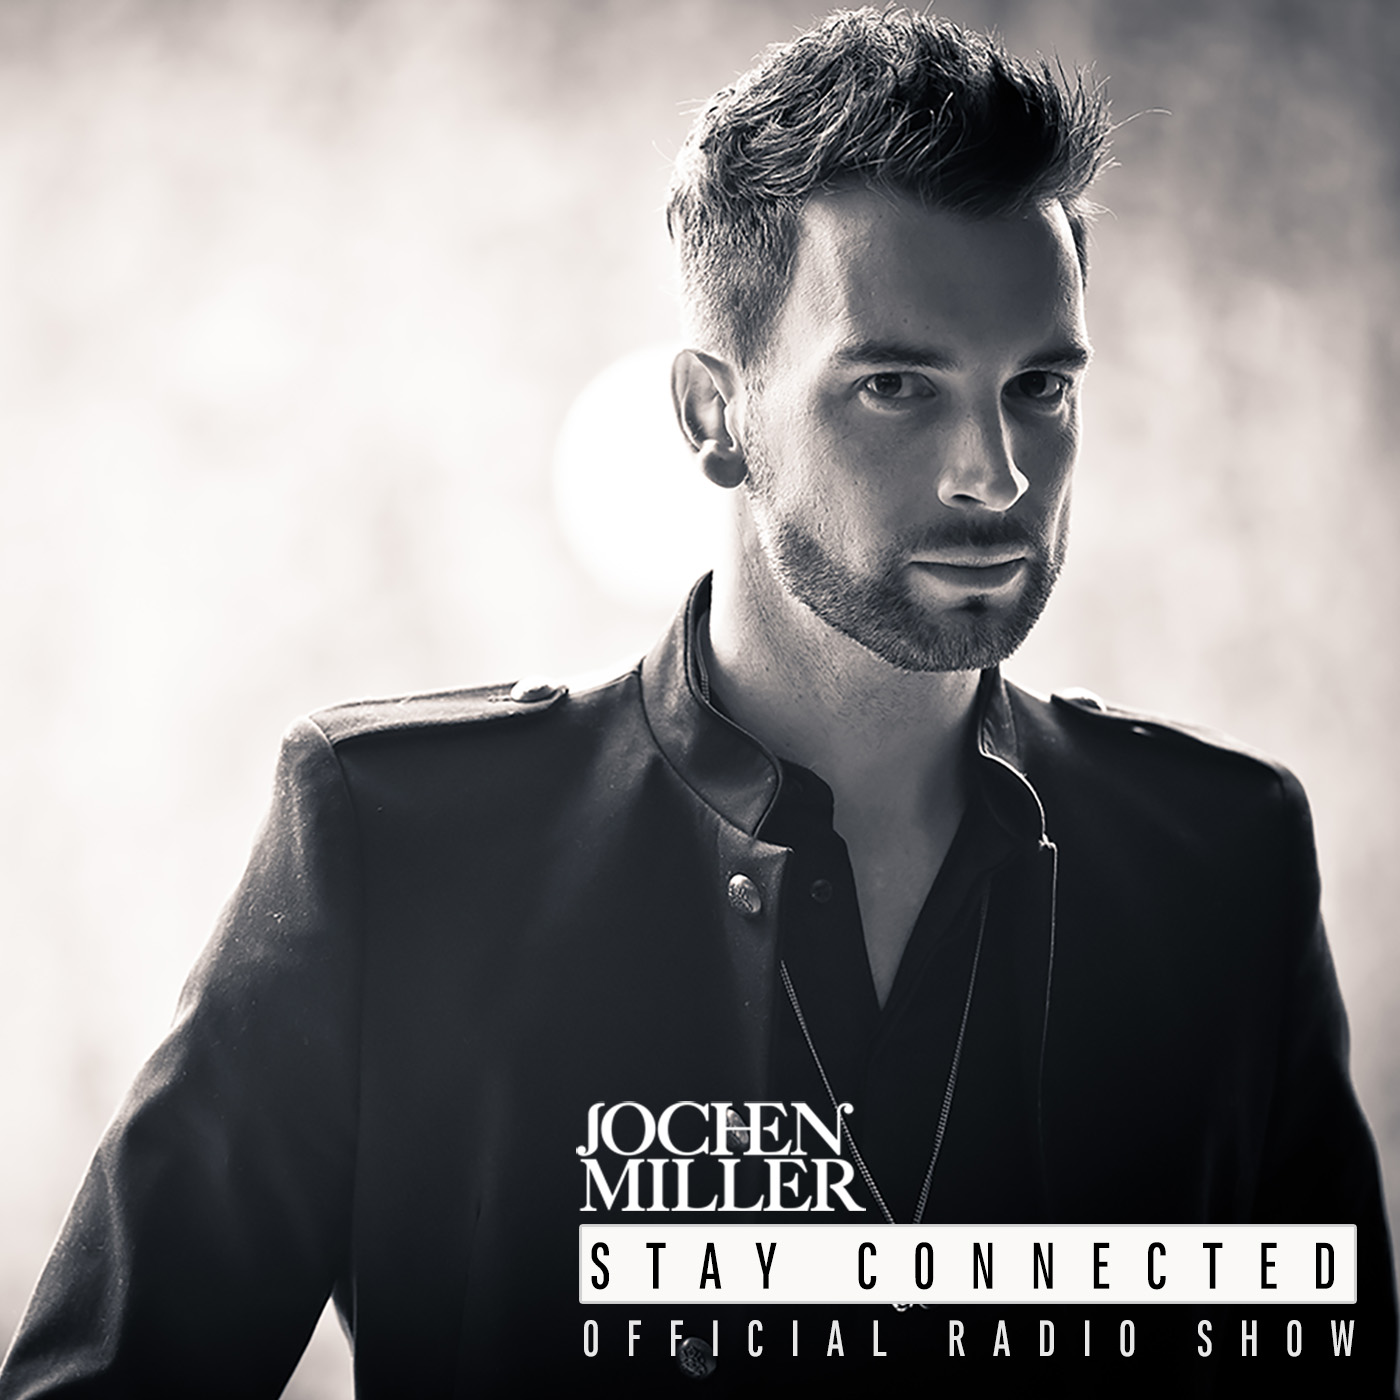 Stay Connected radio